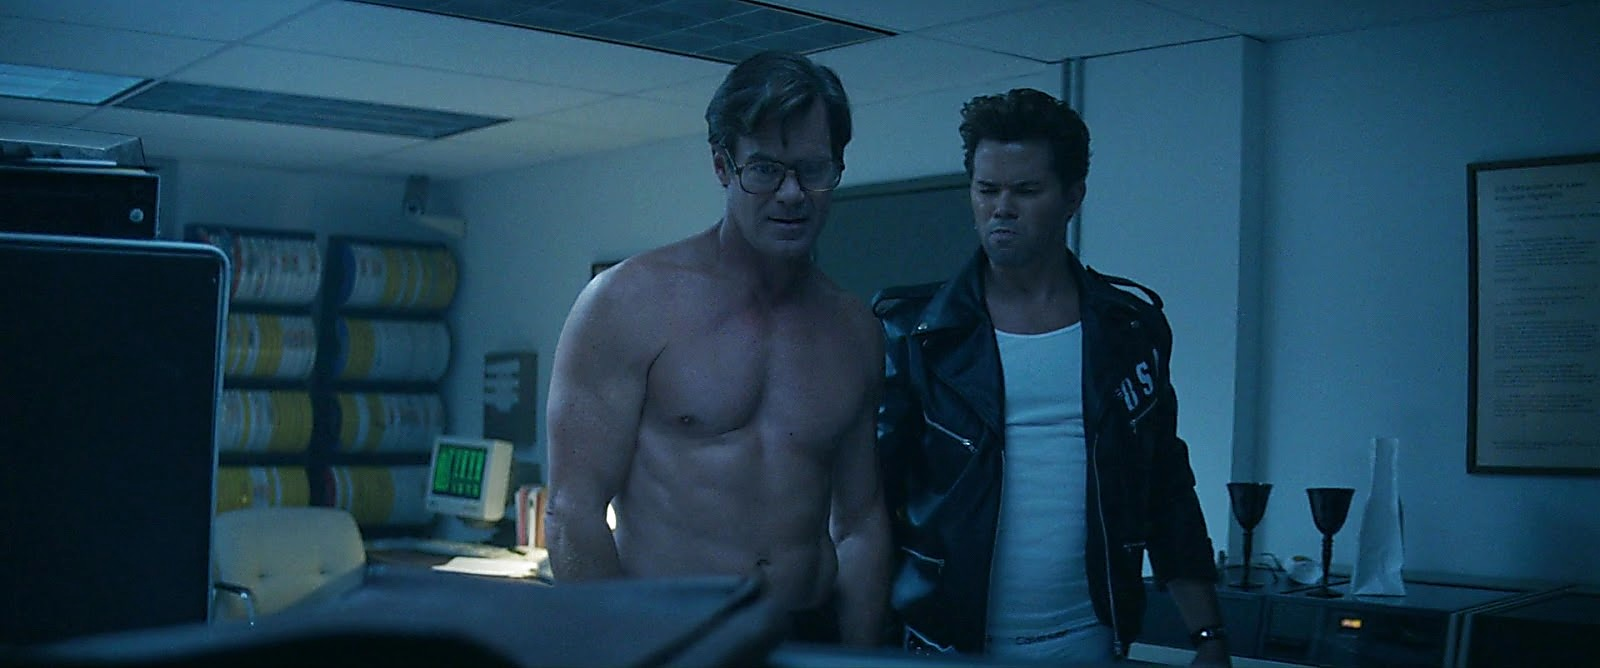 Andrew Rannells sexy shirtless scene June 28, 2020, 3pm